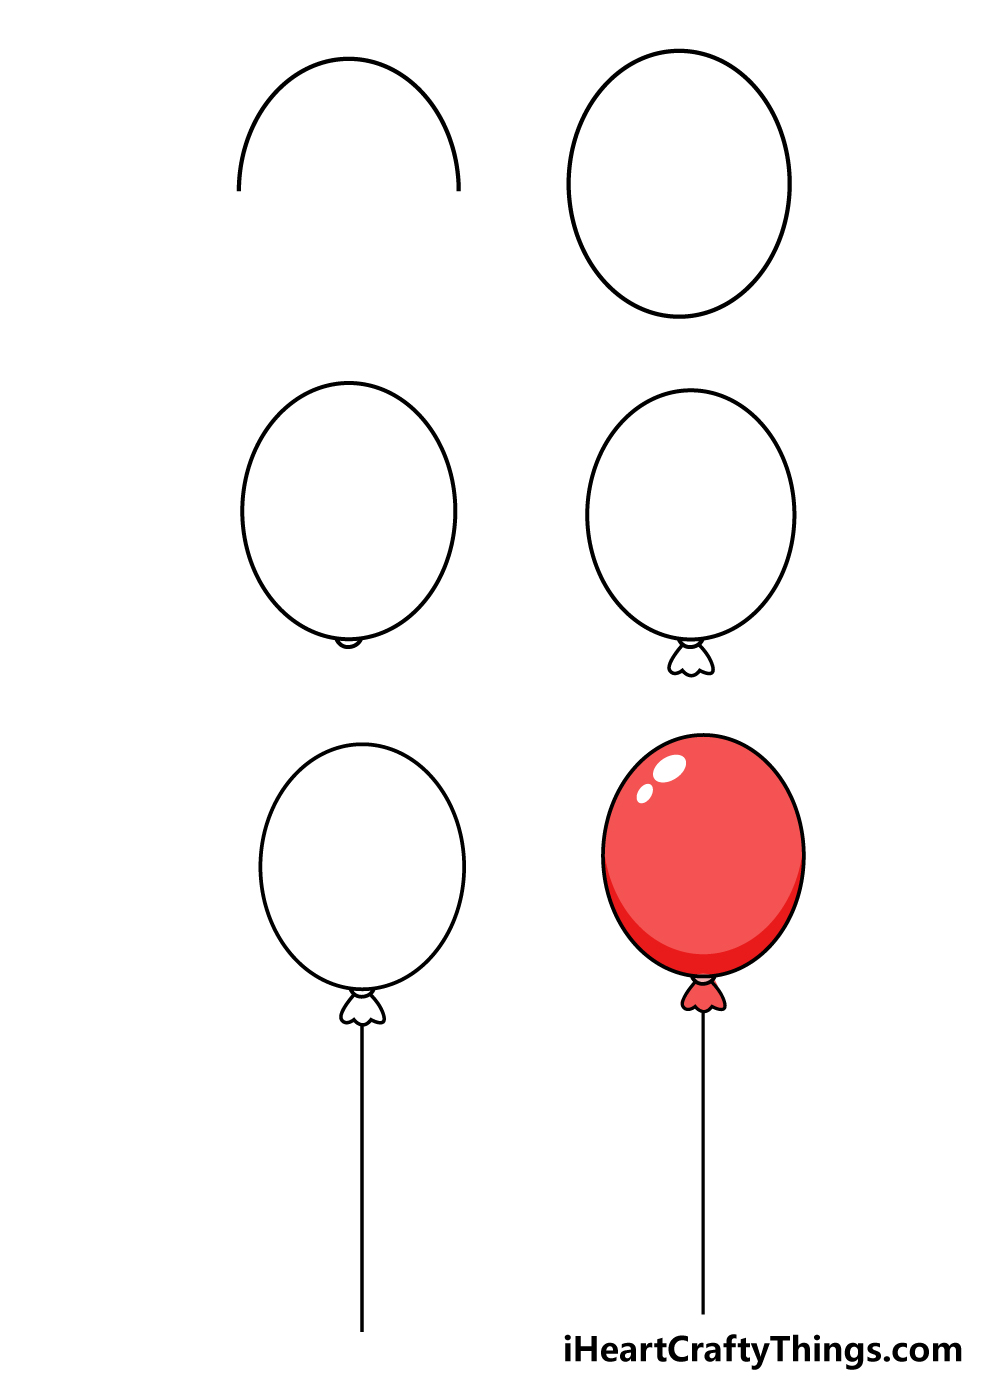 how to draw balloons in 6 steps